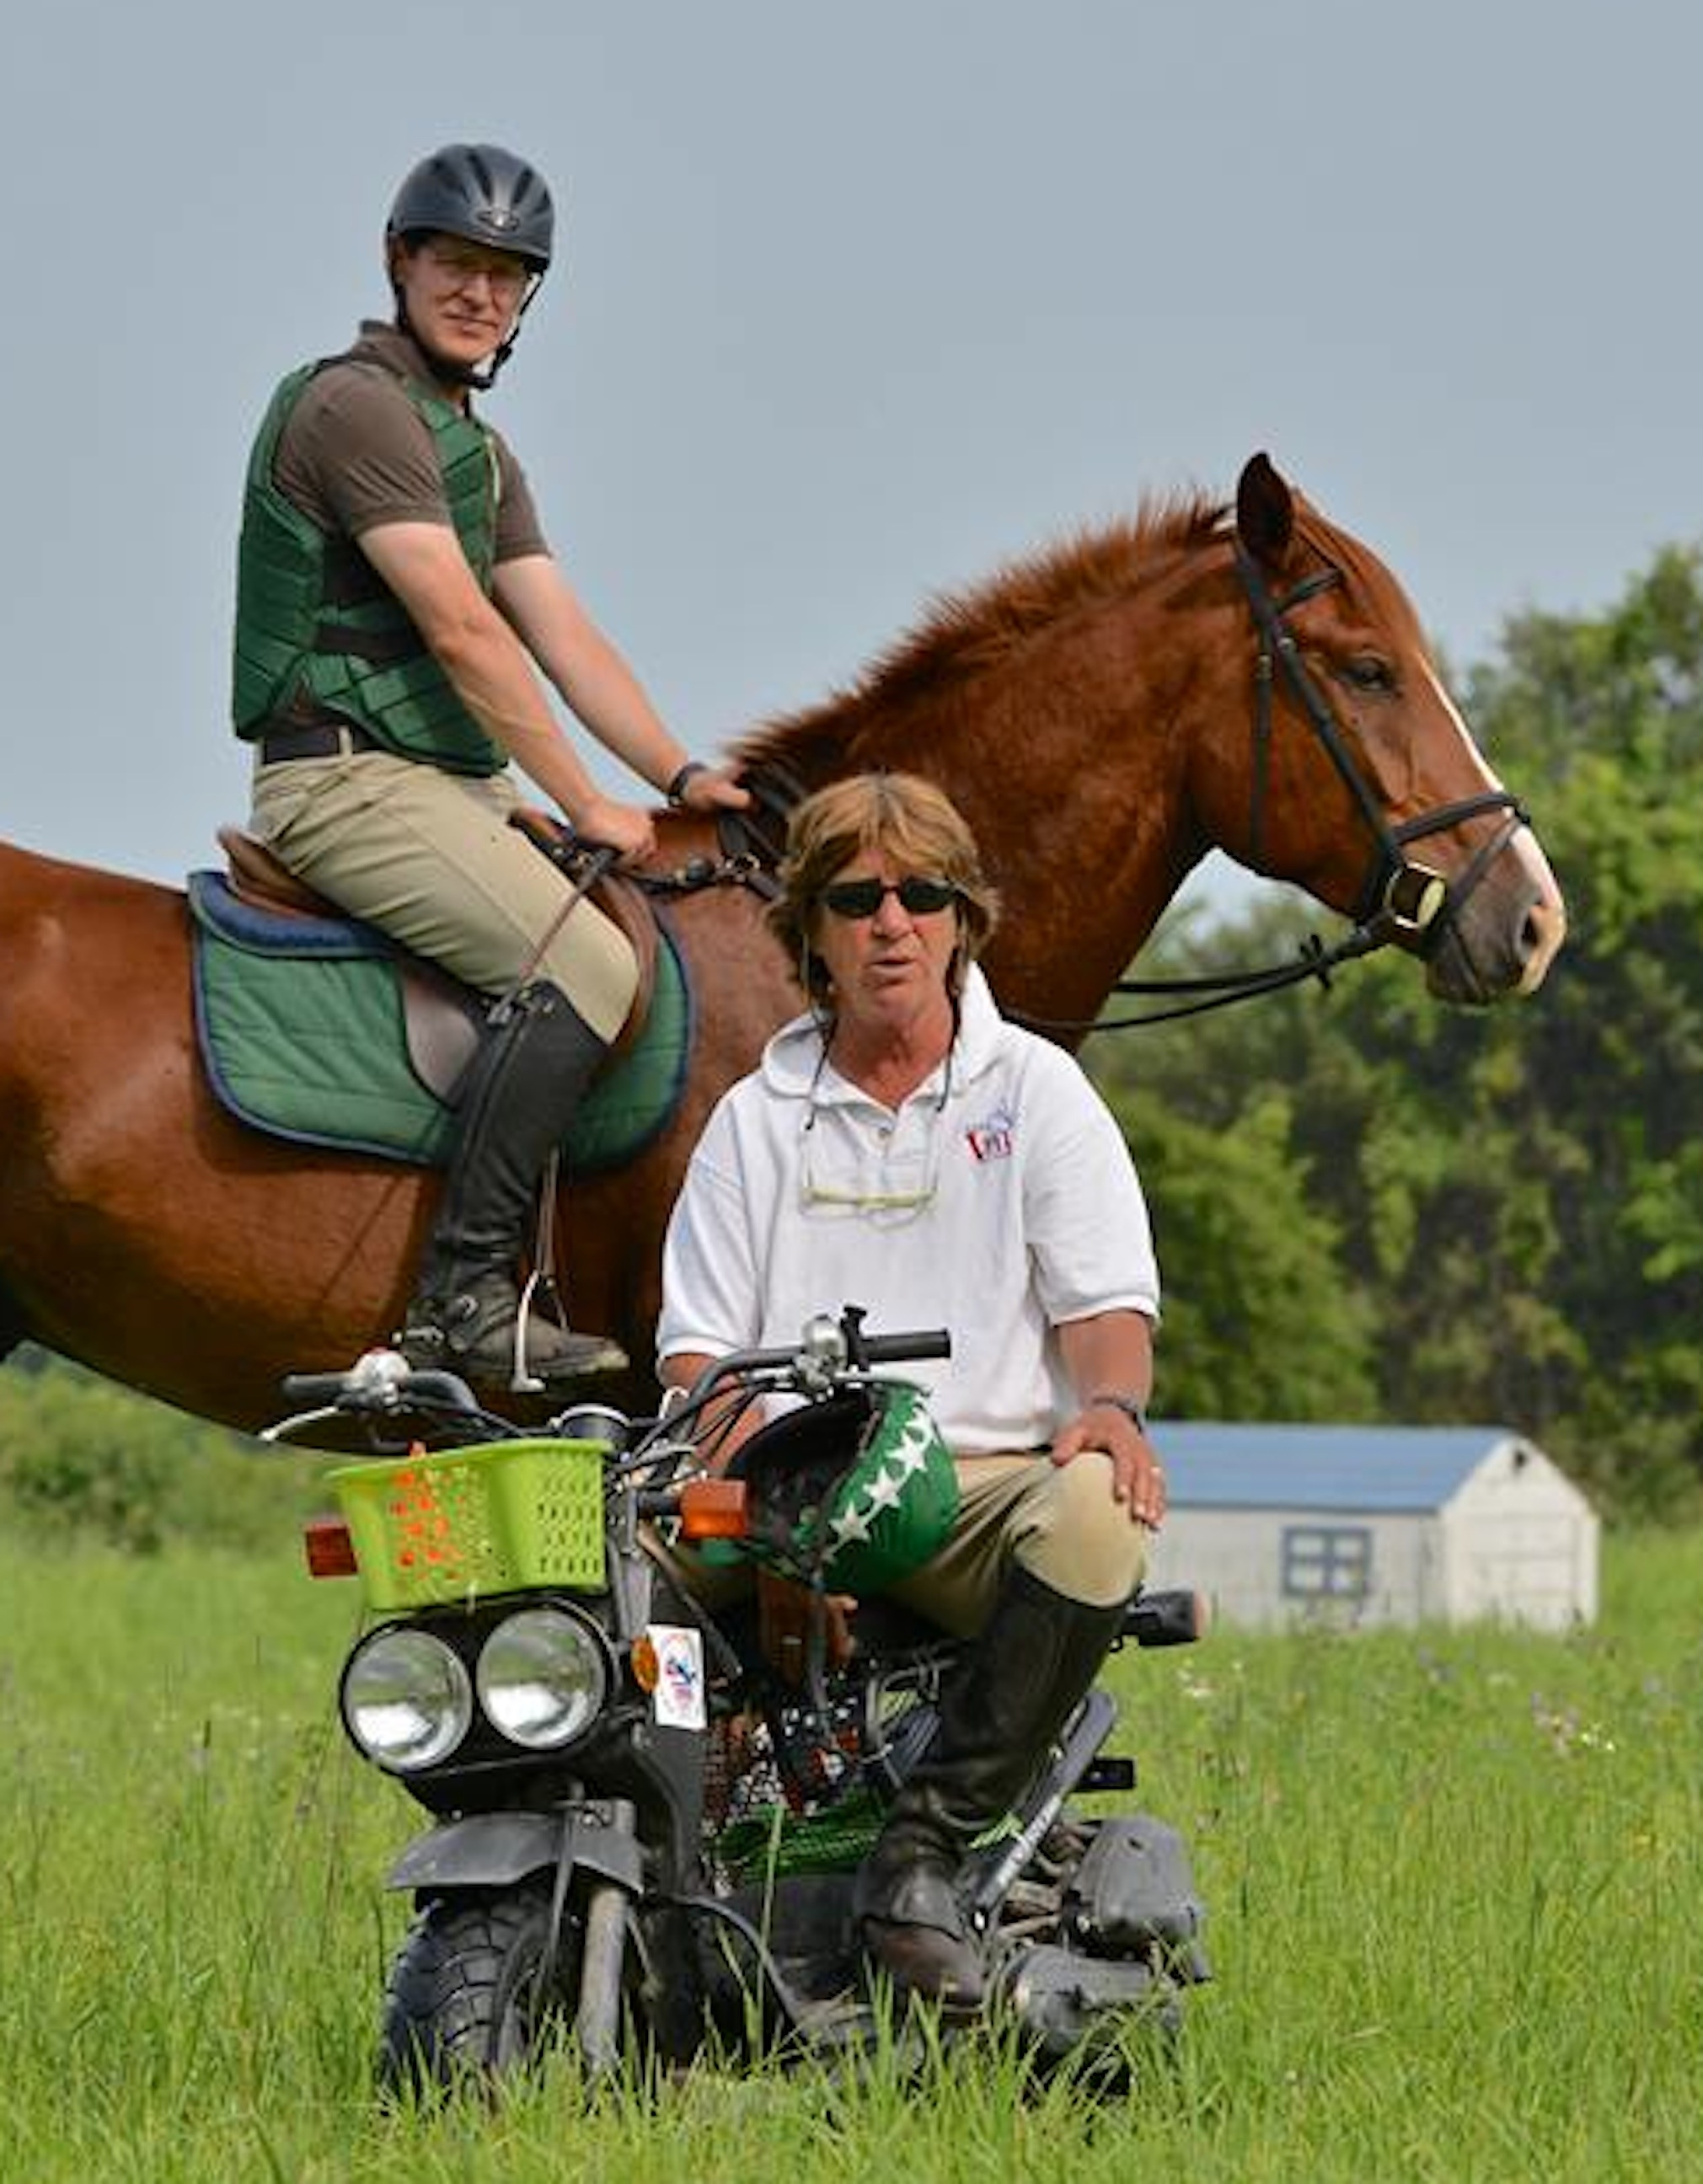 Cathy teaching on the cross-country course at Sprucehaven Farm, Canada, during her 2014 eventing clinic. Participant Andrew Pocock stands by. (Photo by Ian Woodley)